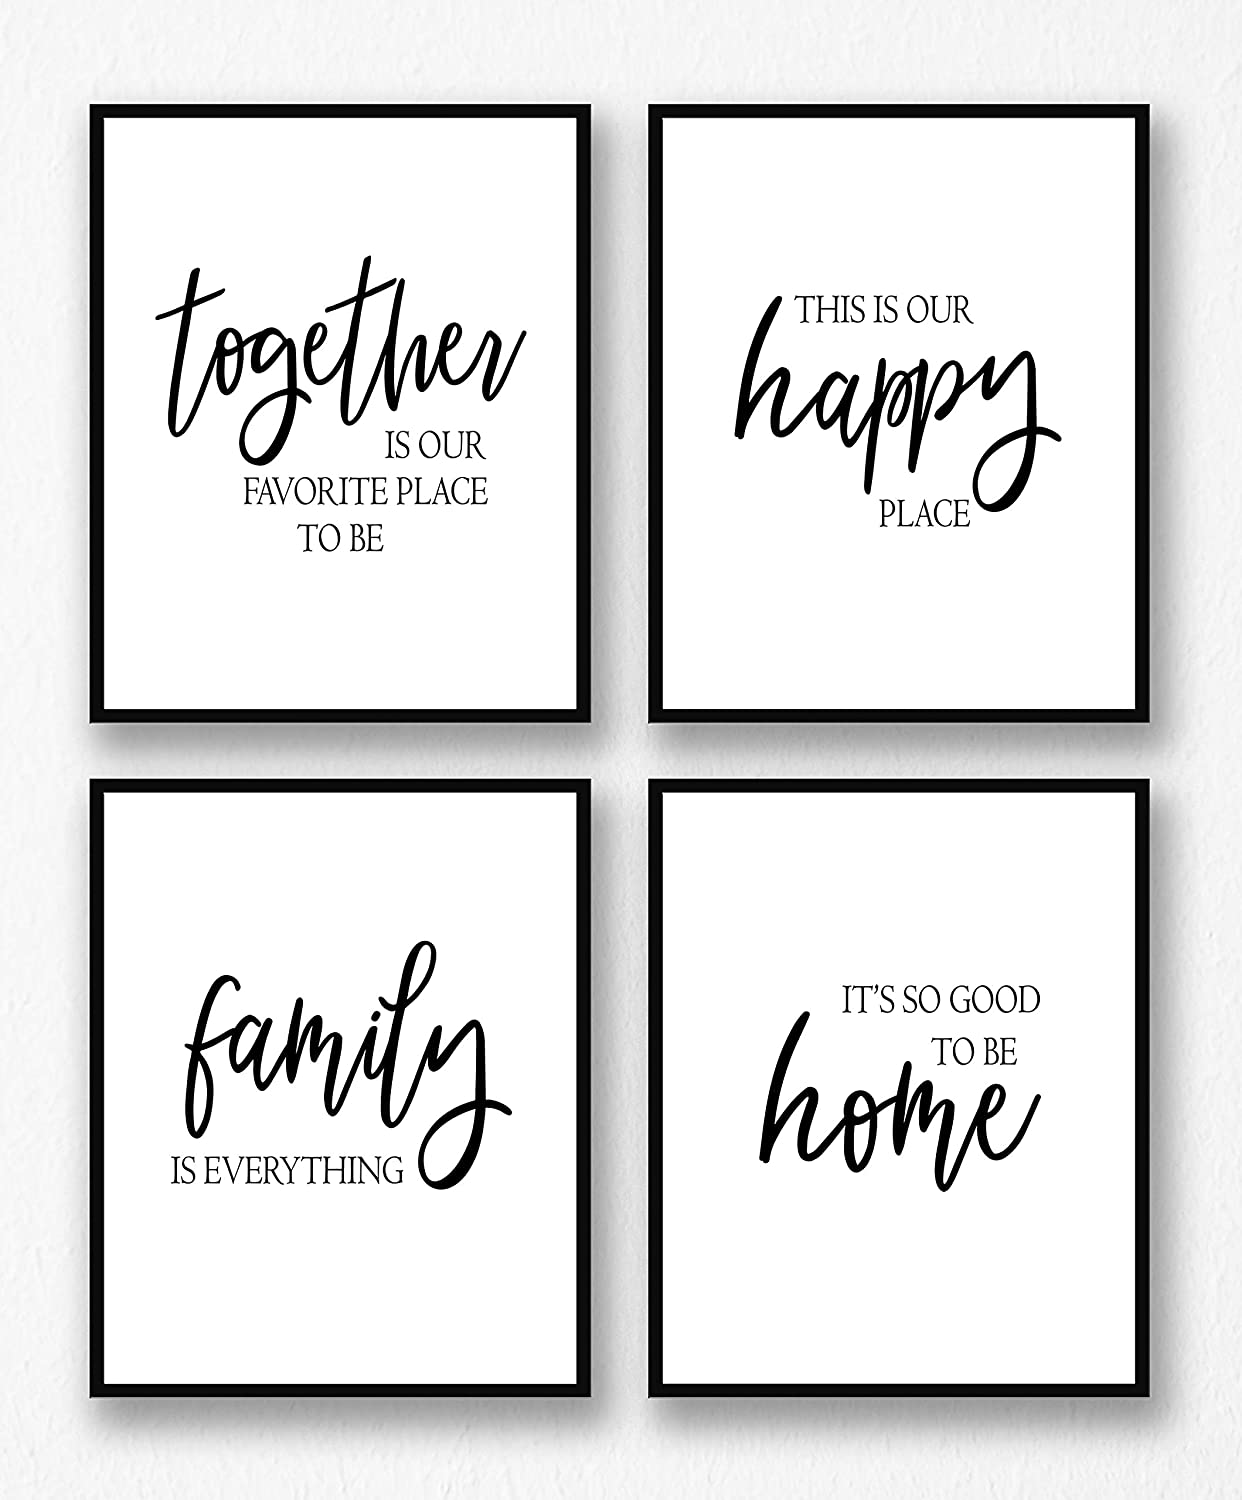 Farmhouse Wall Decor Art Prints Set - 4 UNFRAMED 8 x 10 - Gallery Wall Living Room Family Room Kitchen Dining Room for Home, Fall Autumn Decor - Together is Our Favorite Place